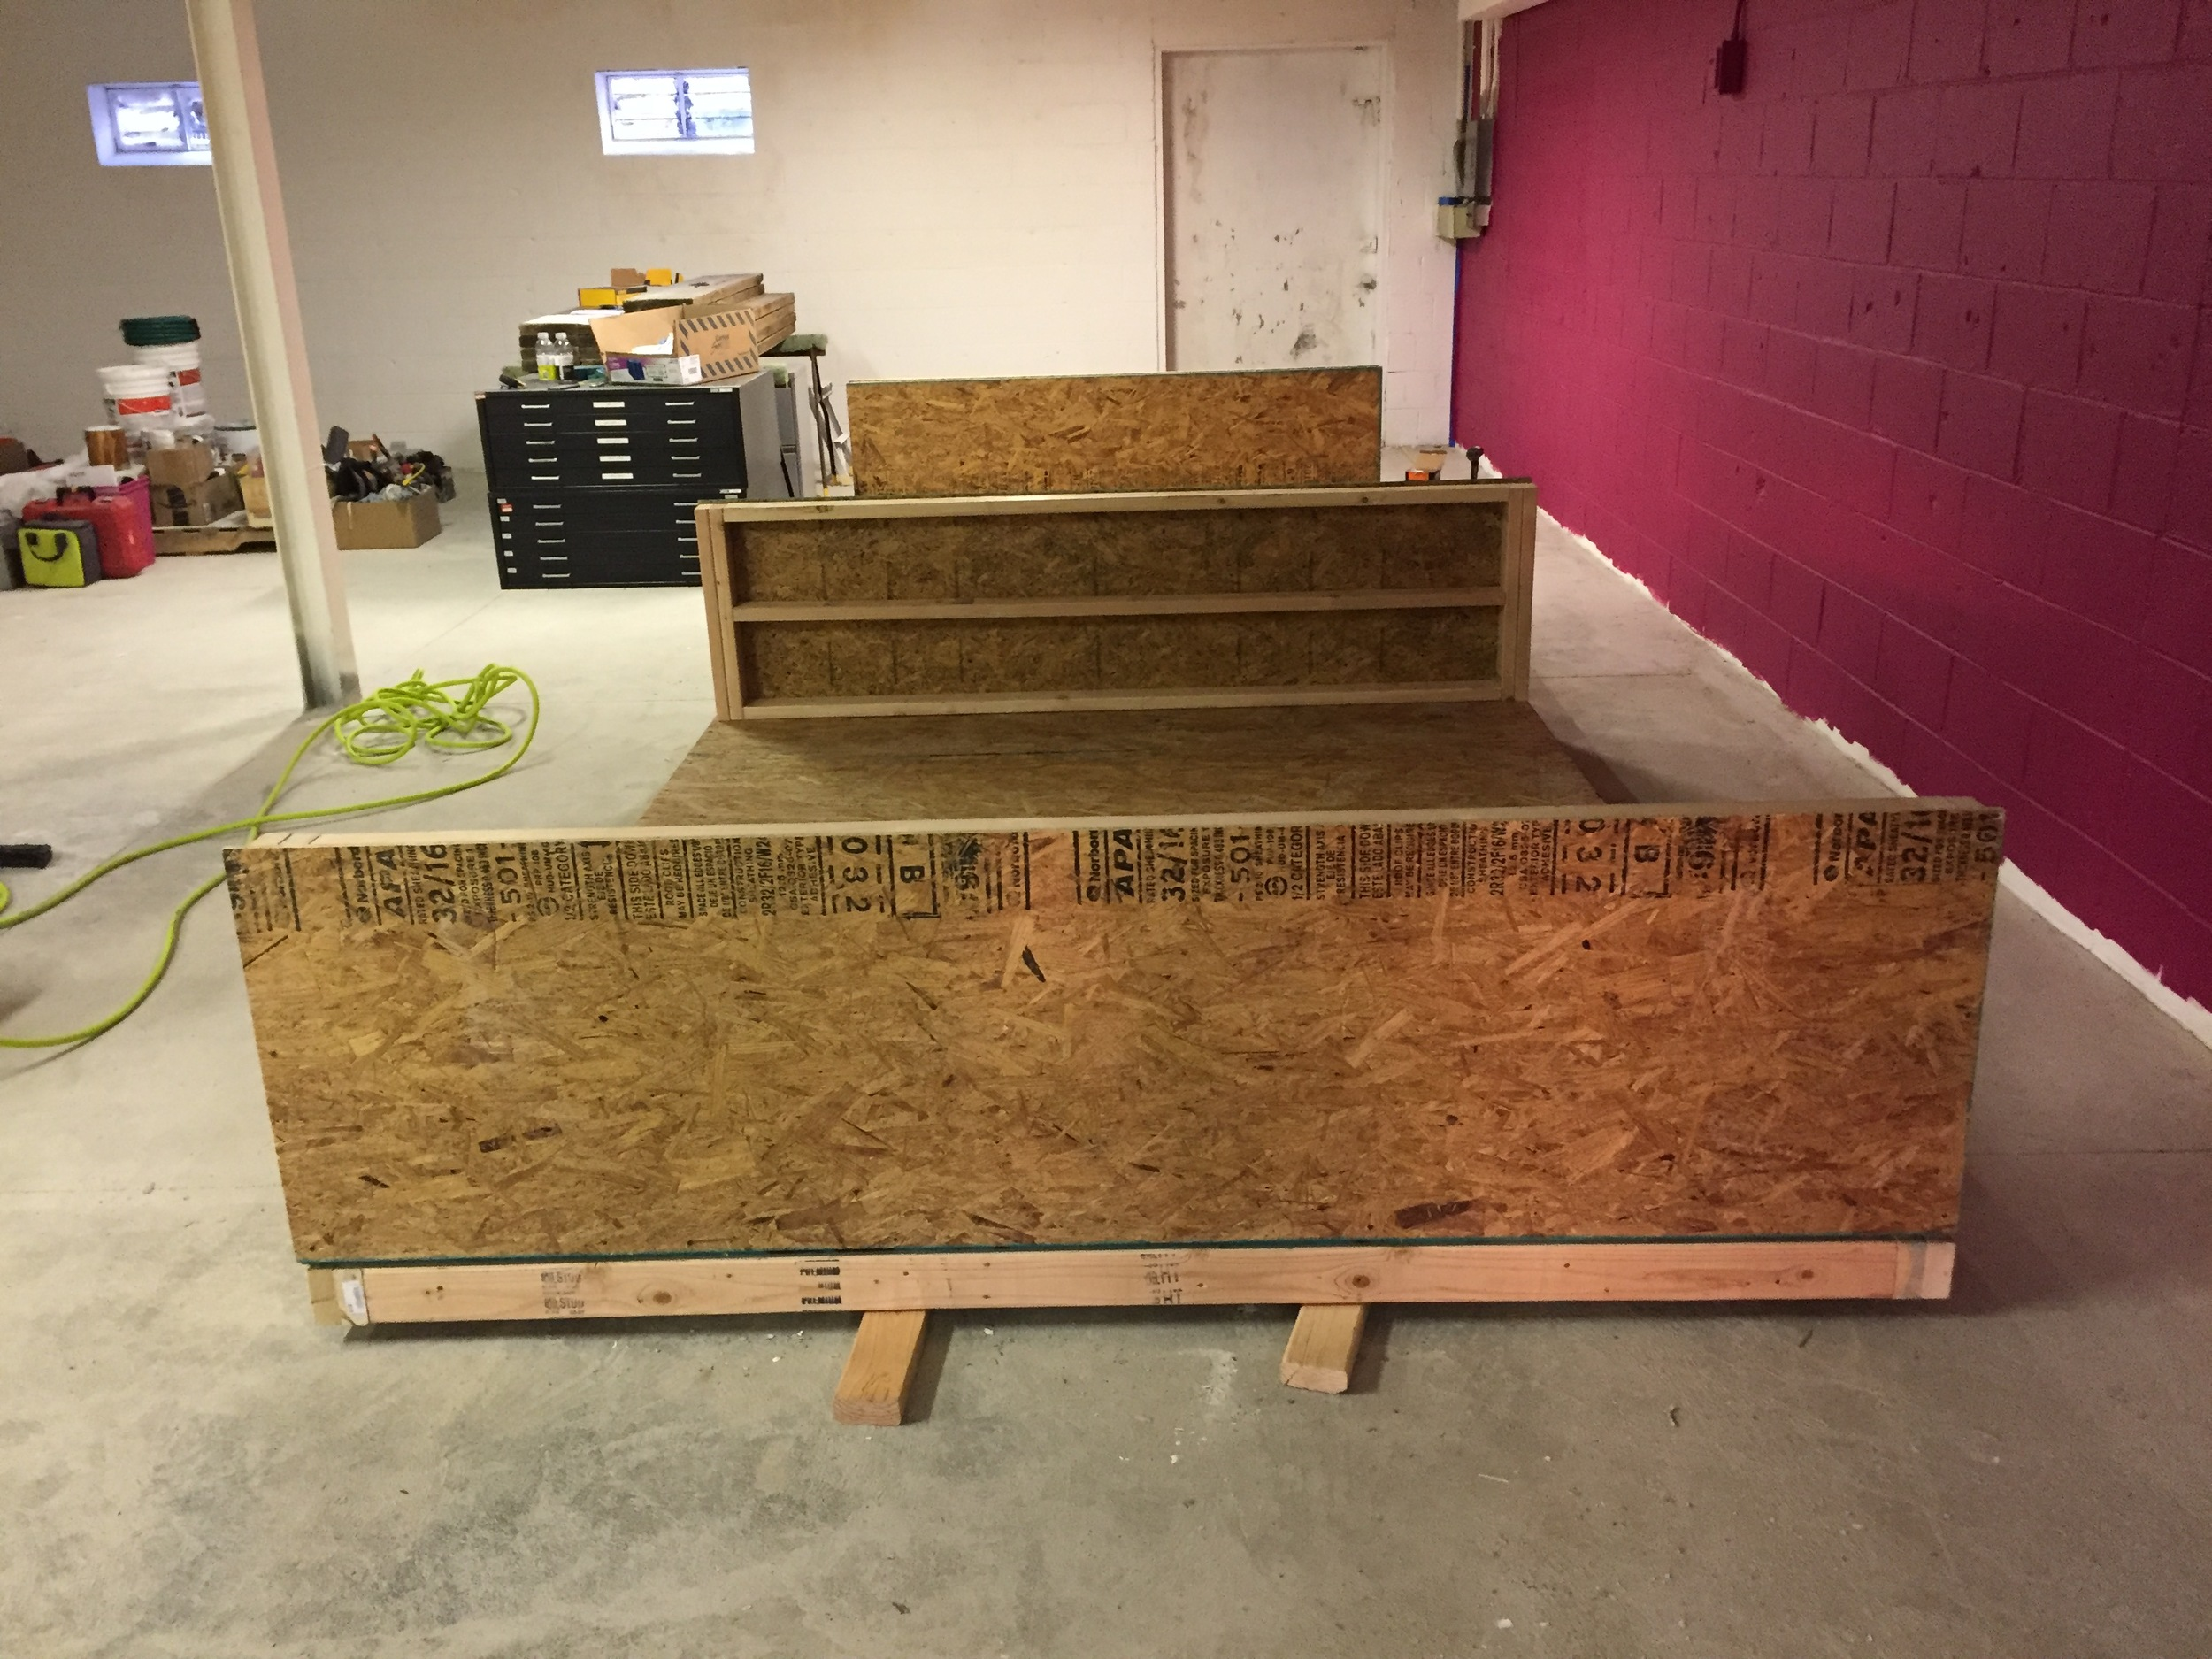 building a pin-up wall / storage unit.